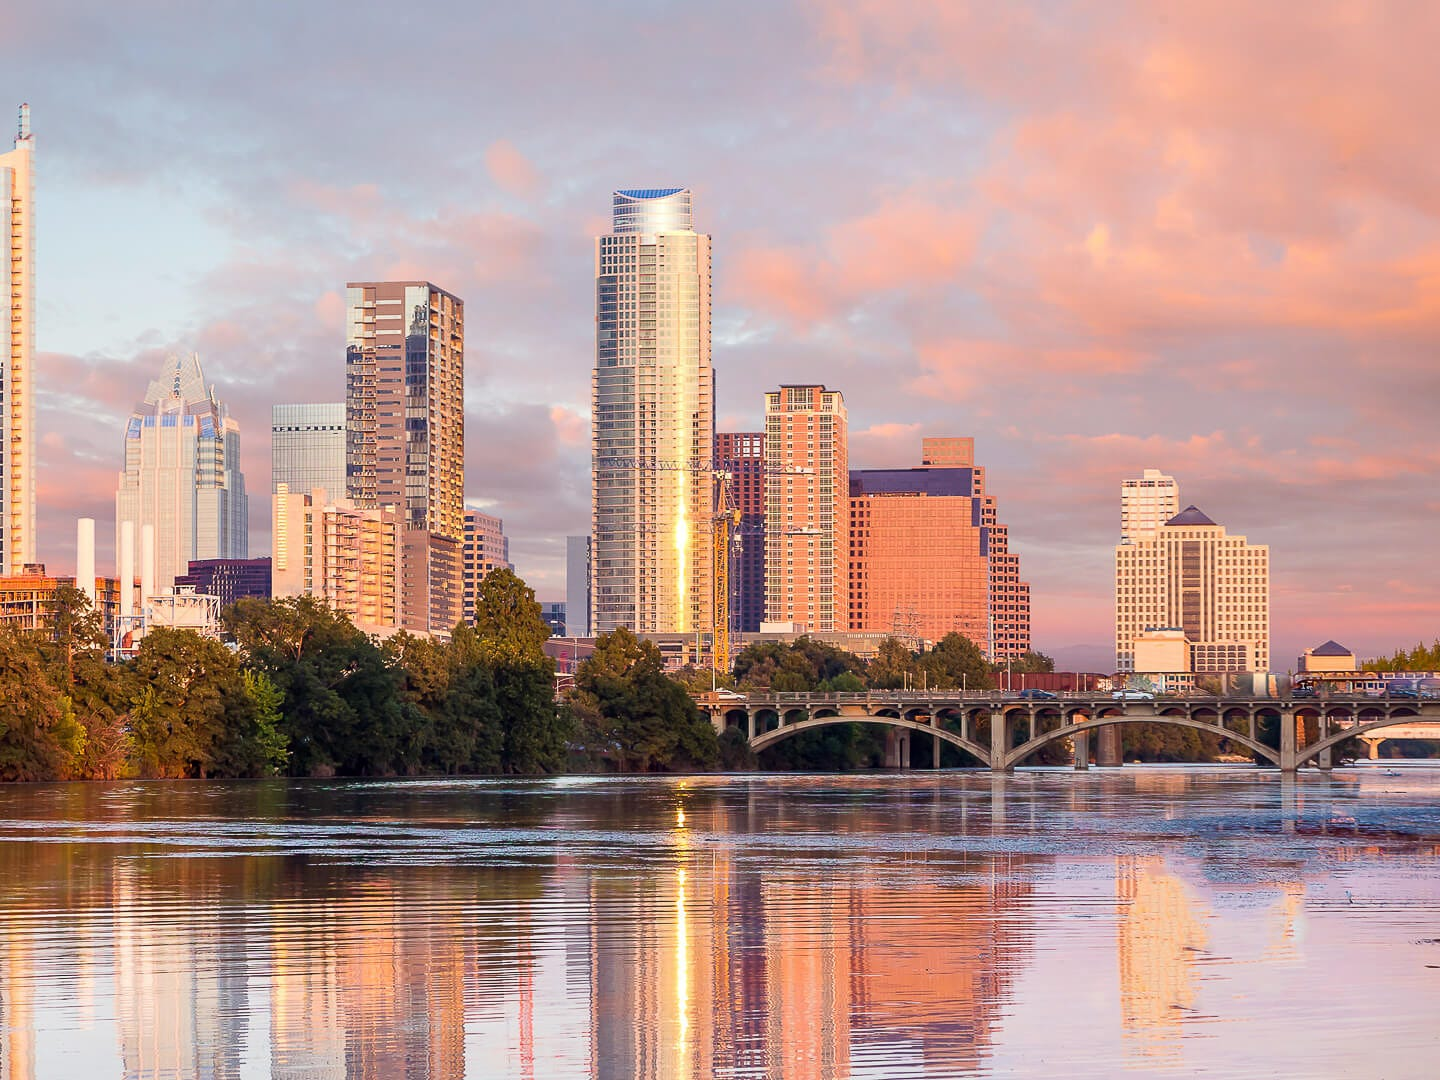 No. 5: Austin, Texas. Thanksgiving trip cost: $944.50. Christmas trip cost: $825. You can save big if you travel to Austin over Christmas. The city has the fifth-cheapest average hotel costs and the second-cheapest average flight costs of all the destinations included in this study.